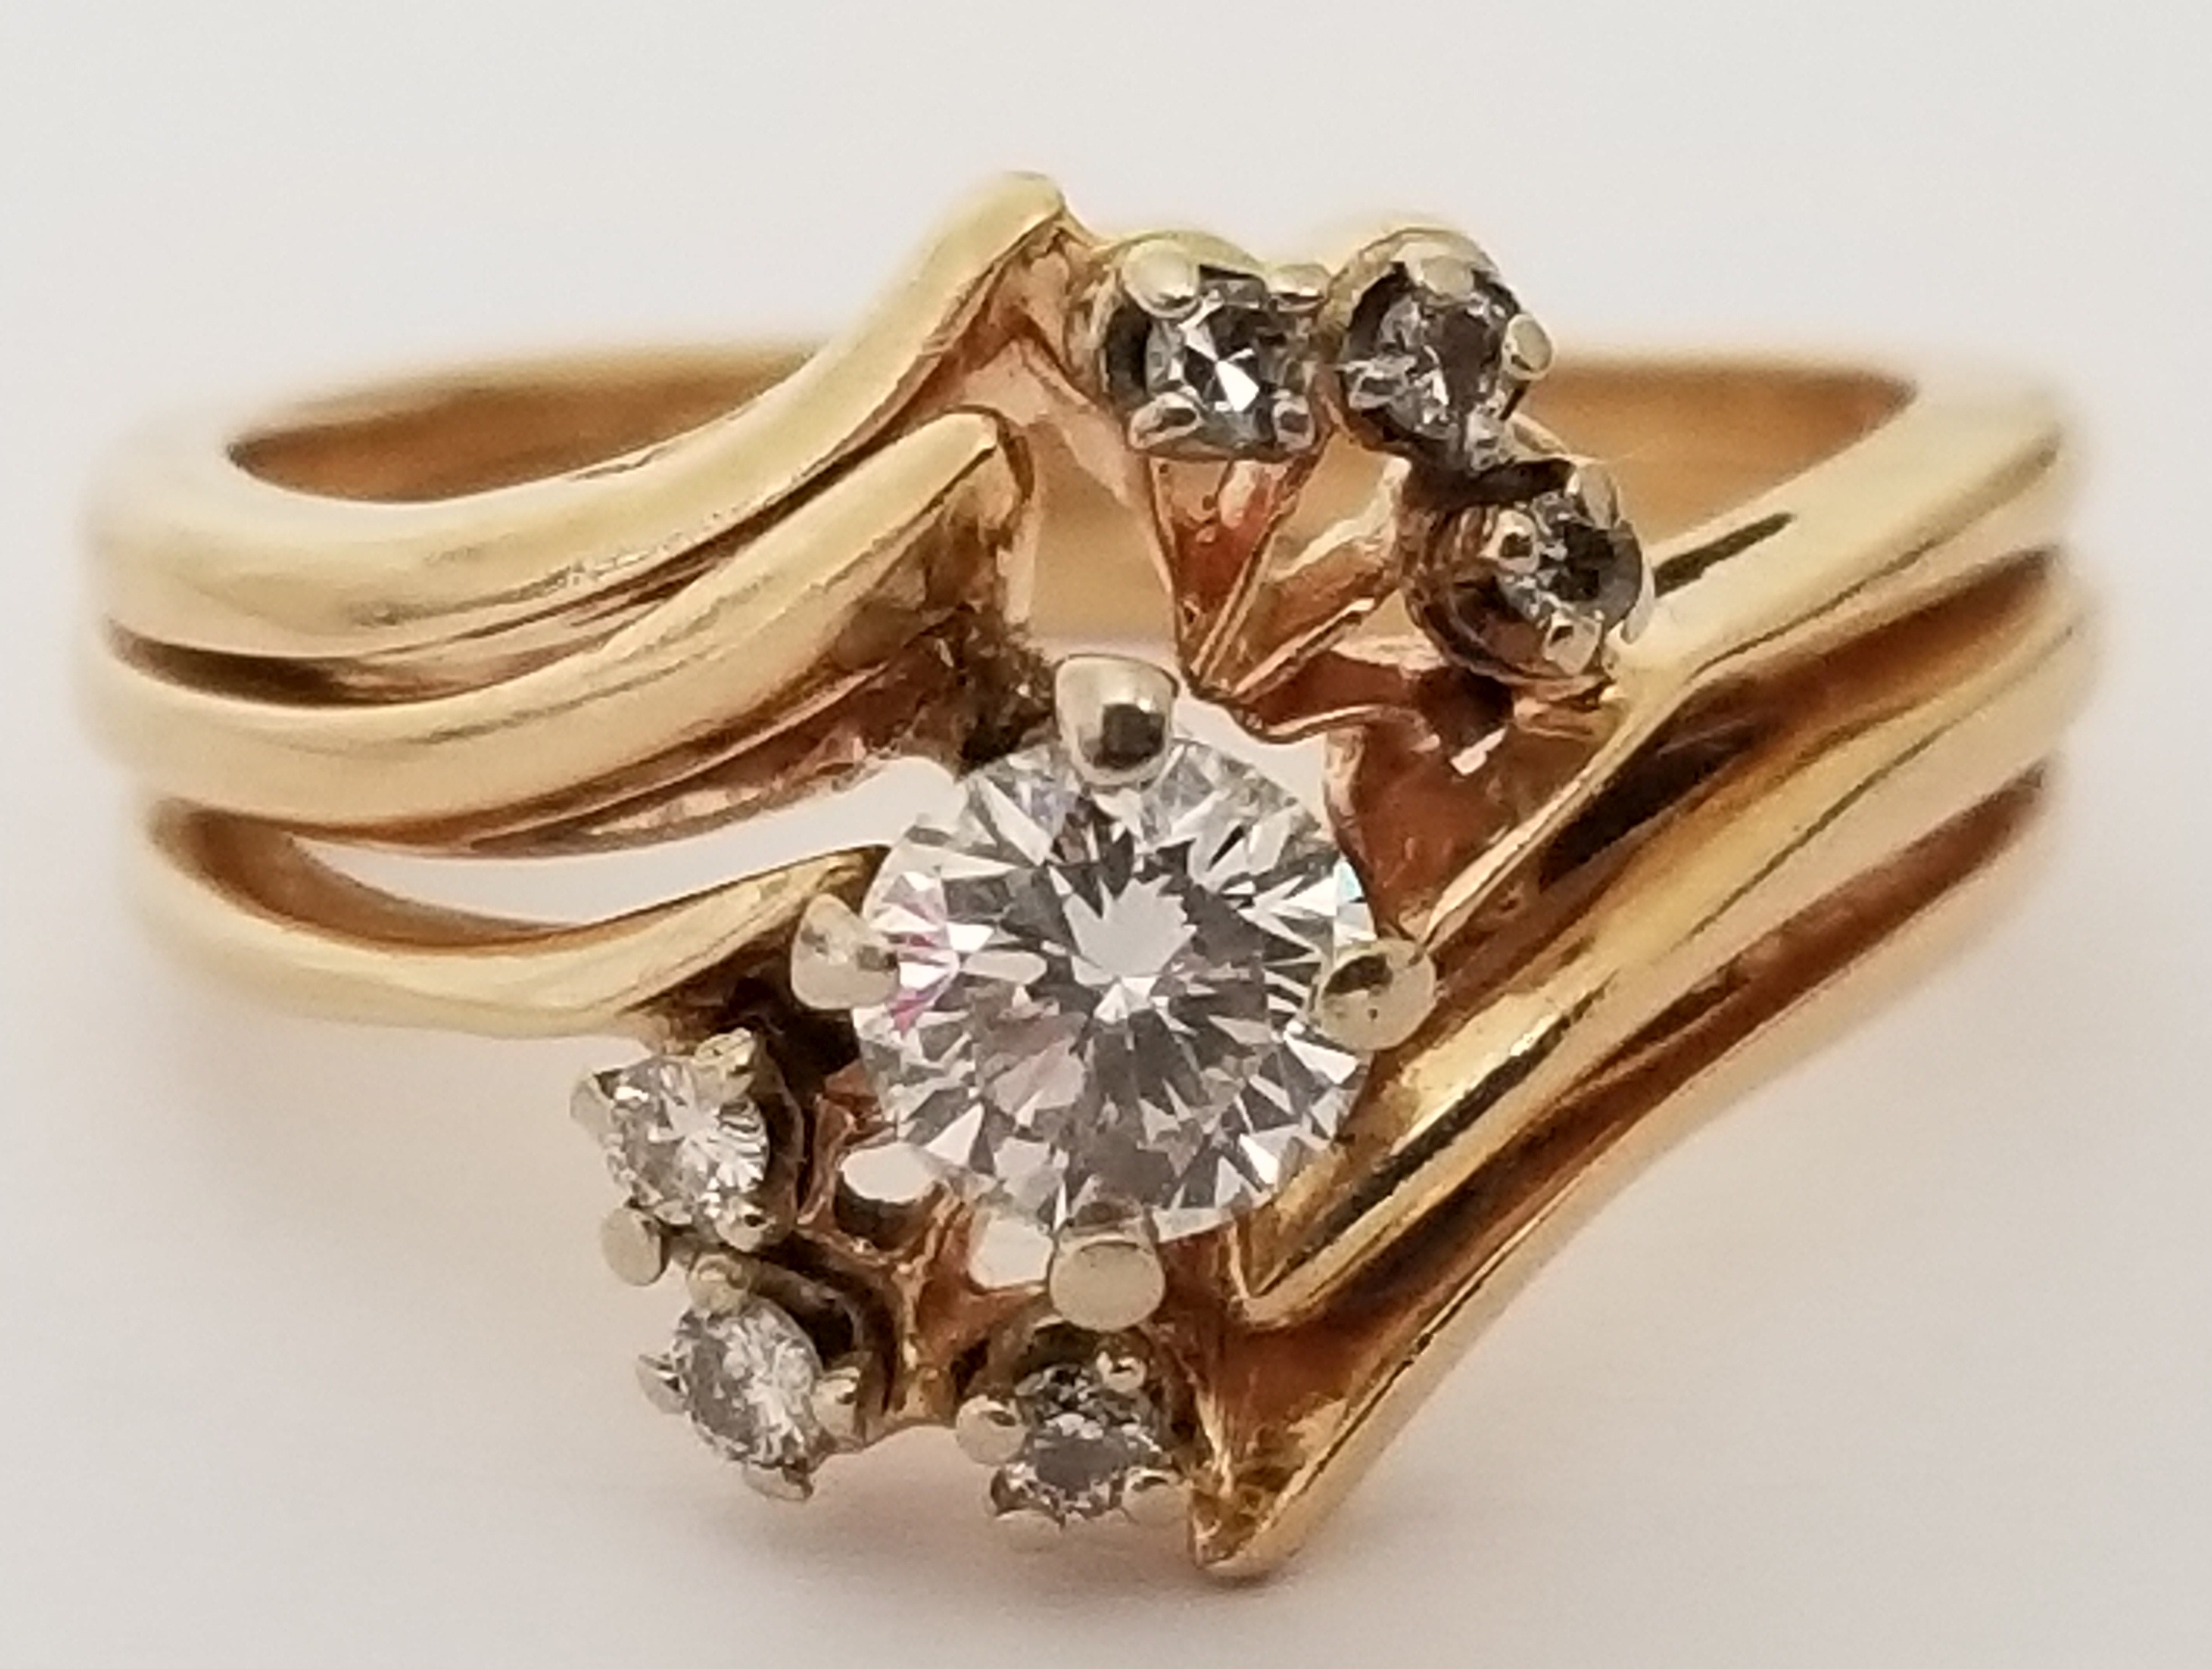 North Phoenix Az High End Gold Amp Silver Ring Estate Jewelry Auction Auction Nation Auction